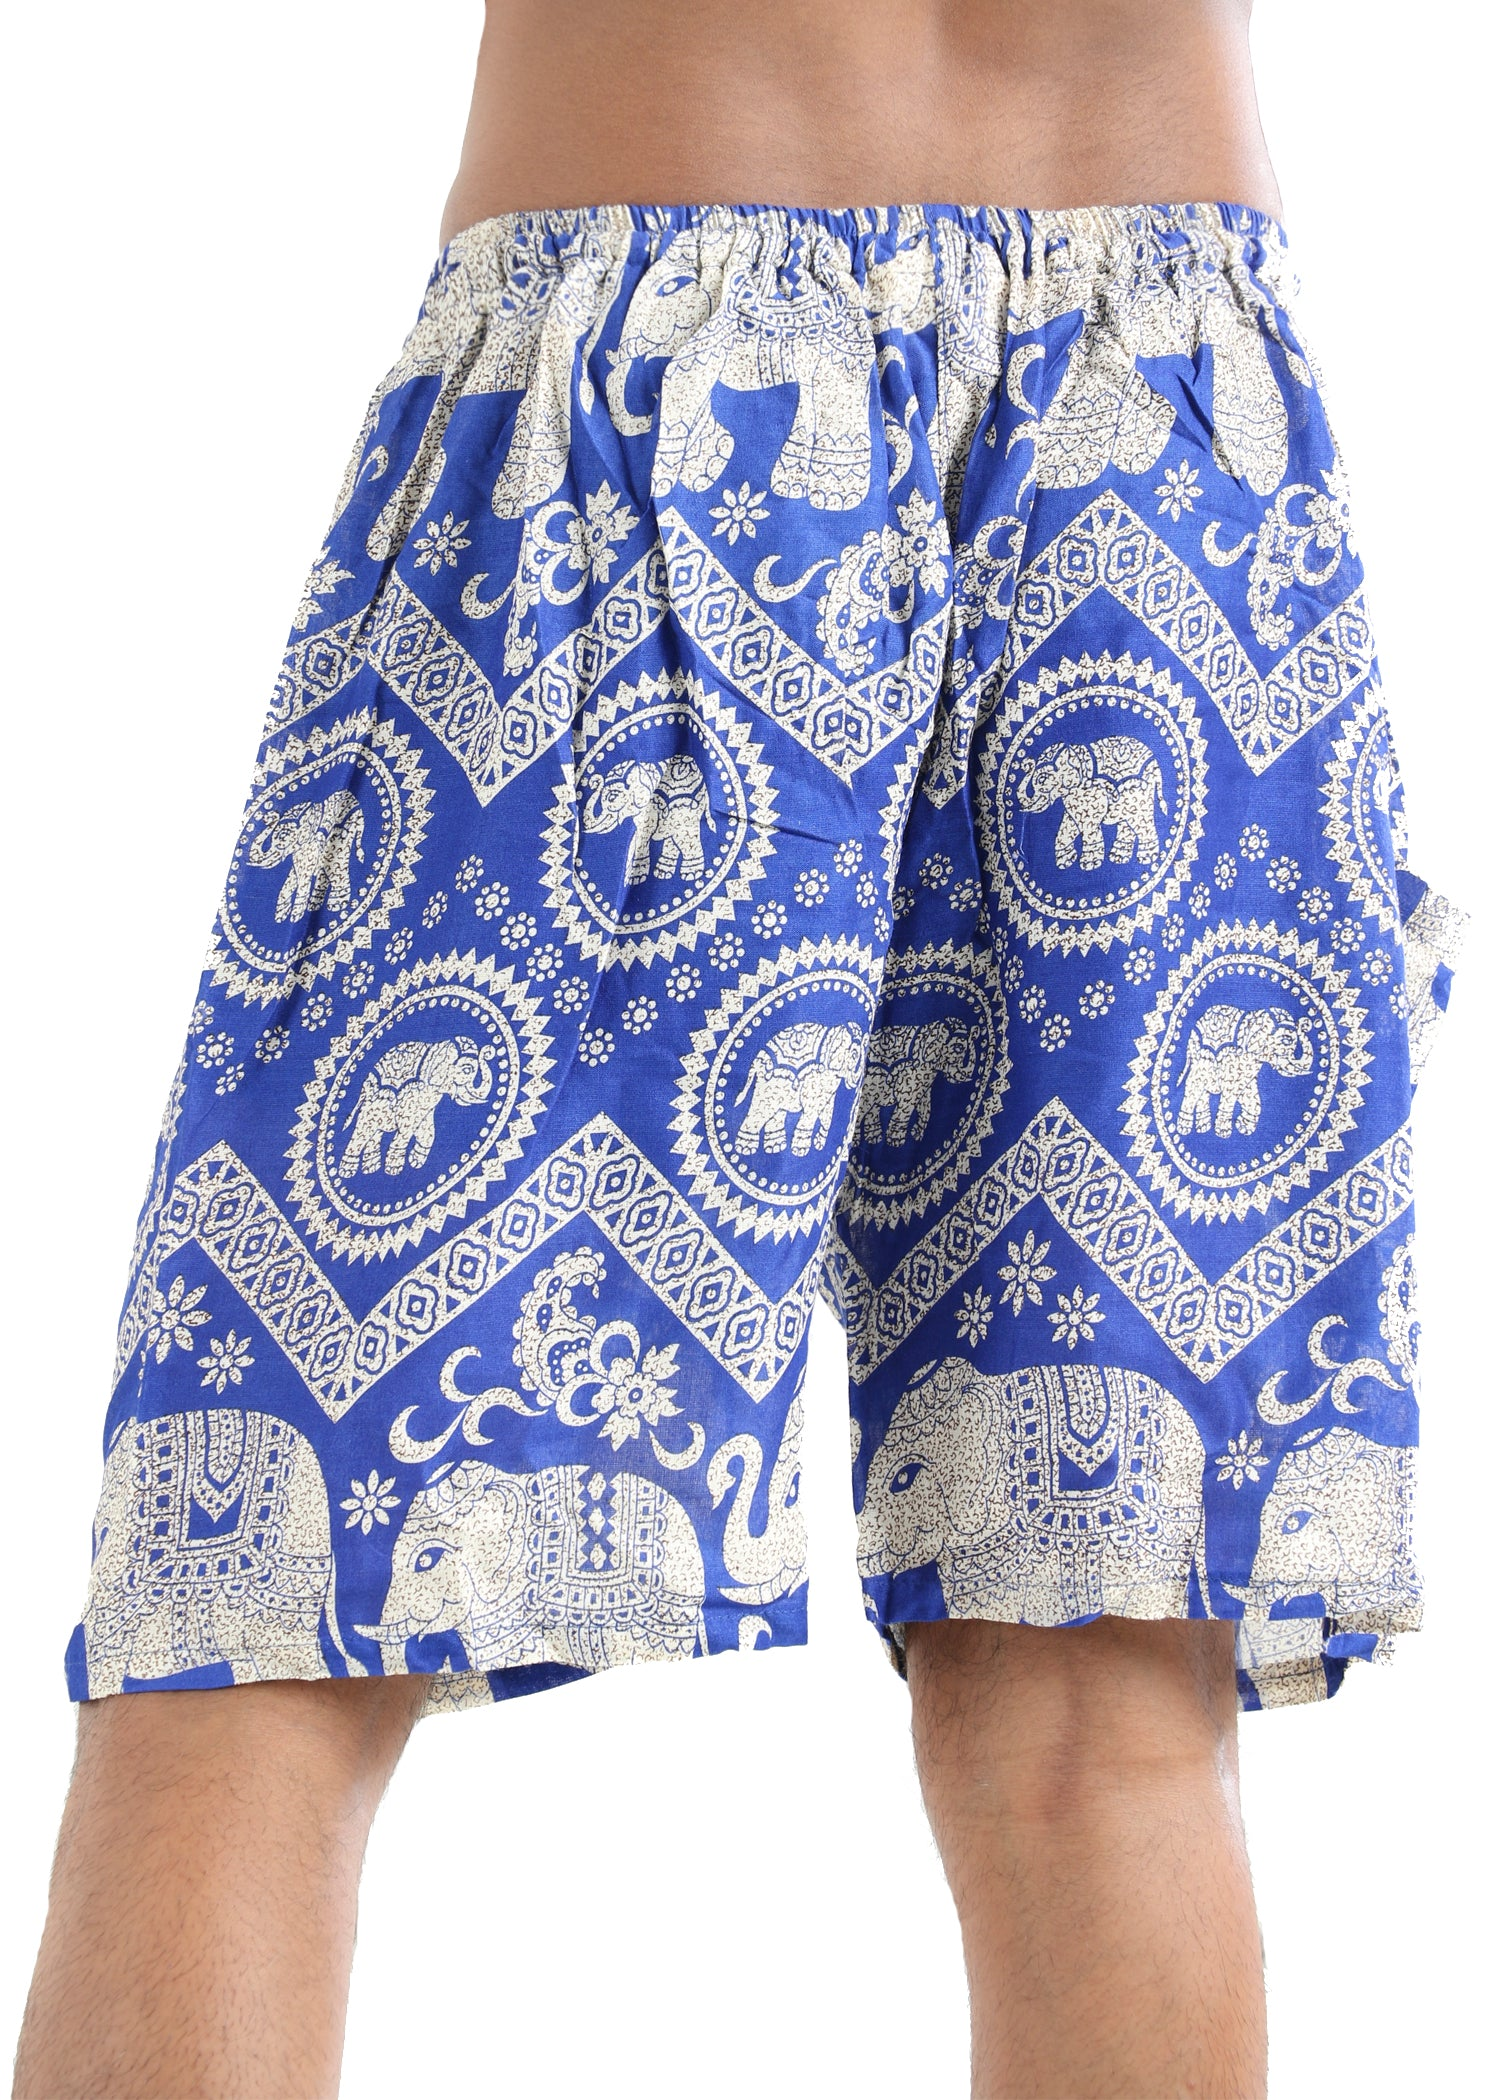 Tusk (Blue) - Buy Harem Pant / Hippie Pants / Boho Pants / online by The Veshti Company